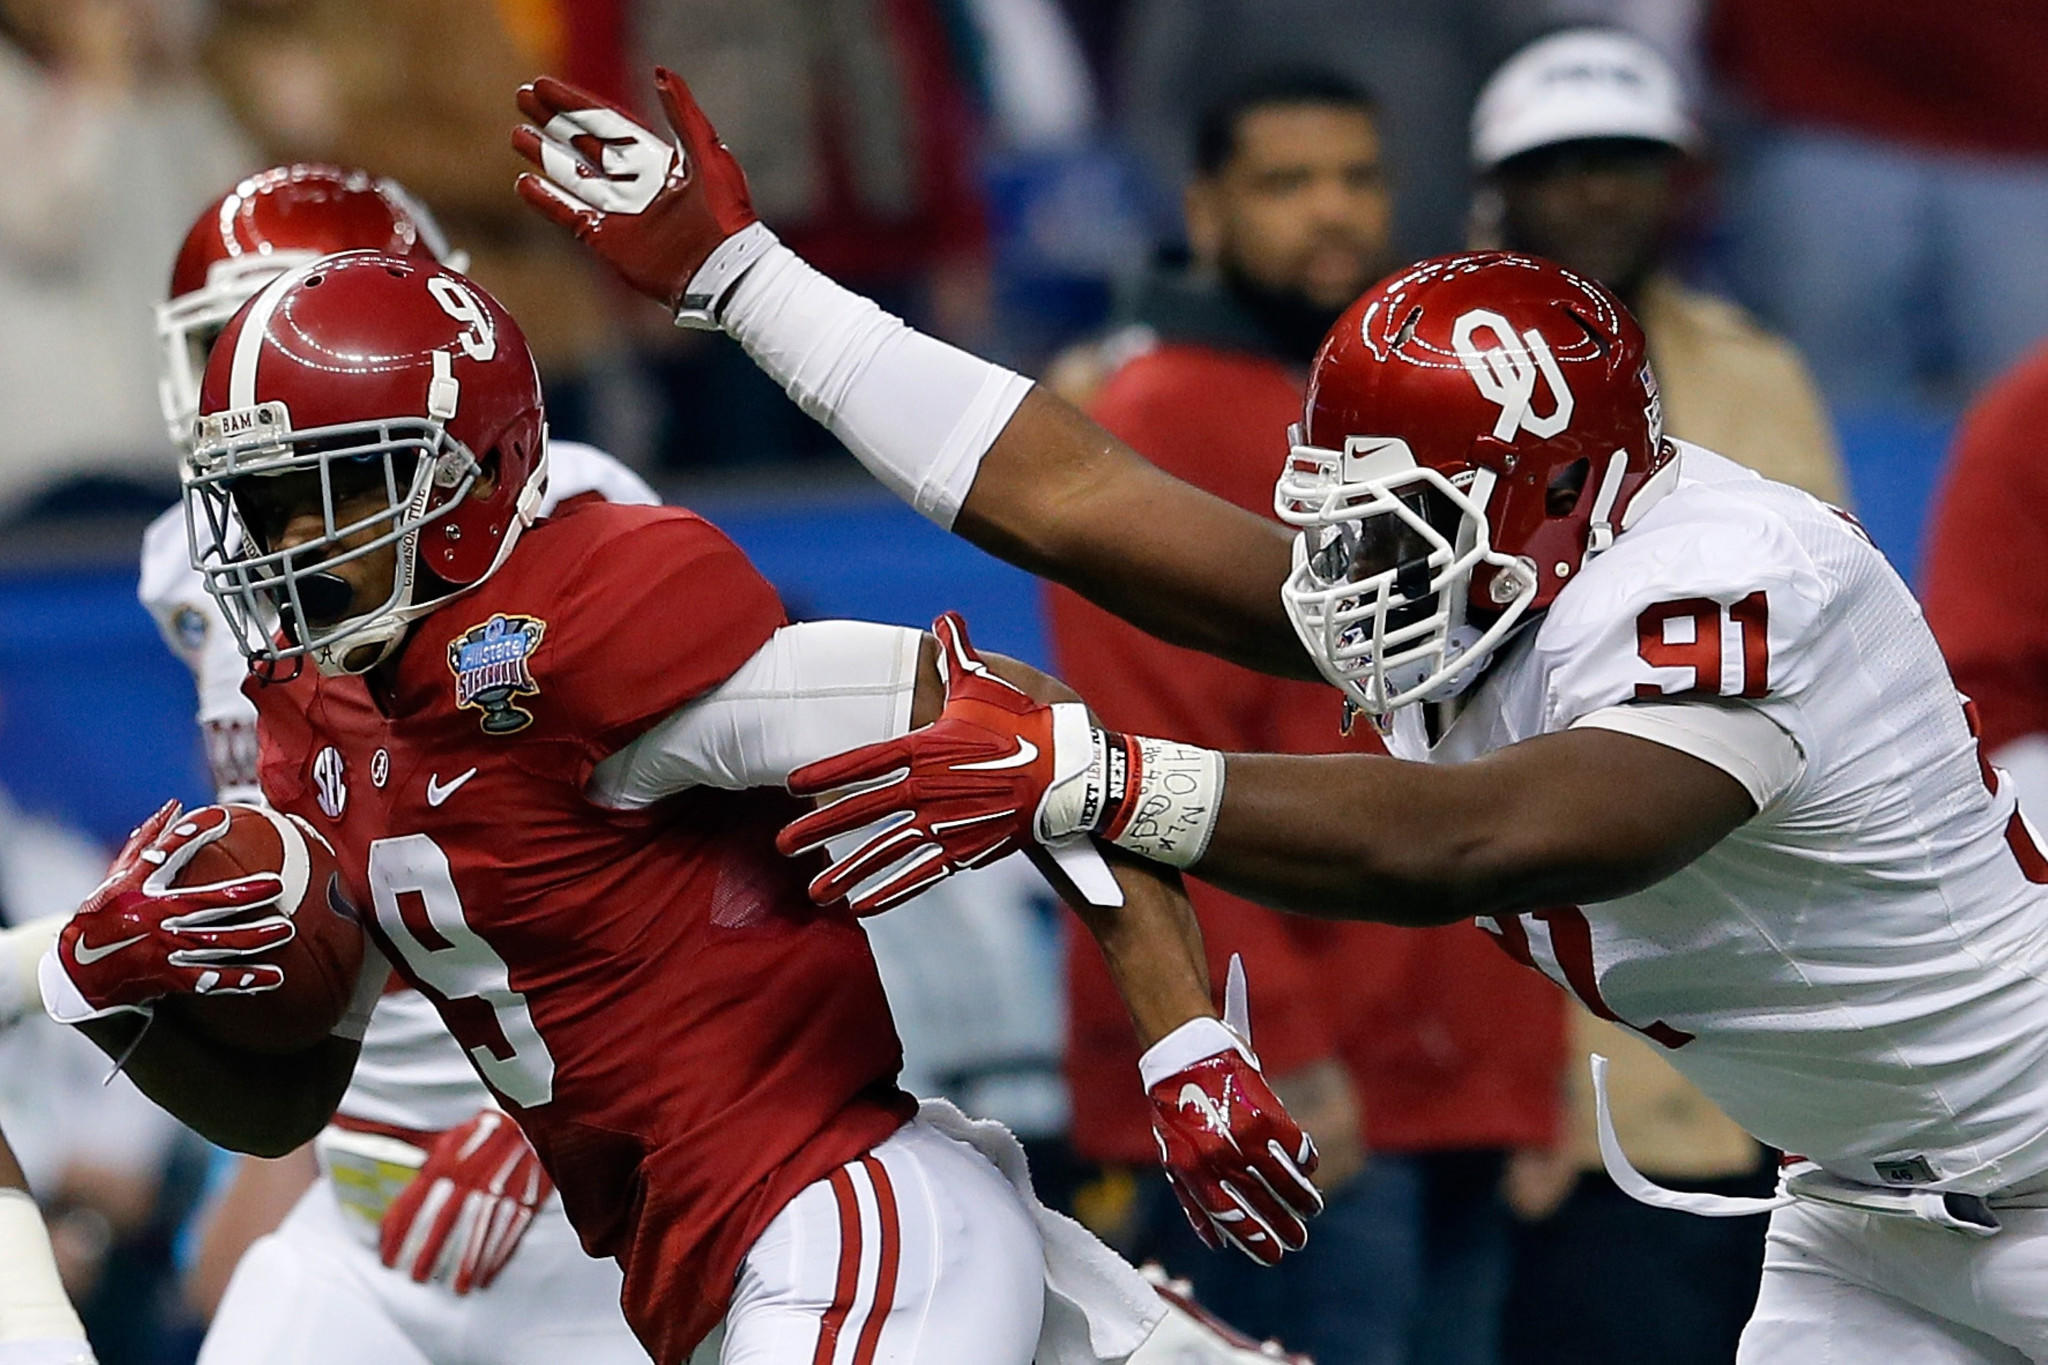 Amari Cooper #9 of the Alabama Crimson Tide is tackled by Charles Tapper #91 of the Oklahoma Sooners during the Allstate Sugar Bowl at the Mercedes-Benz Superdome.